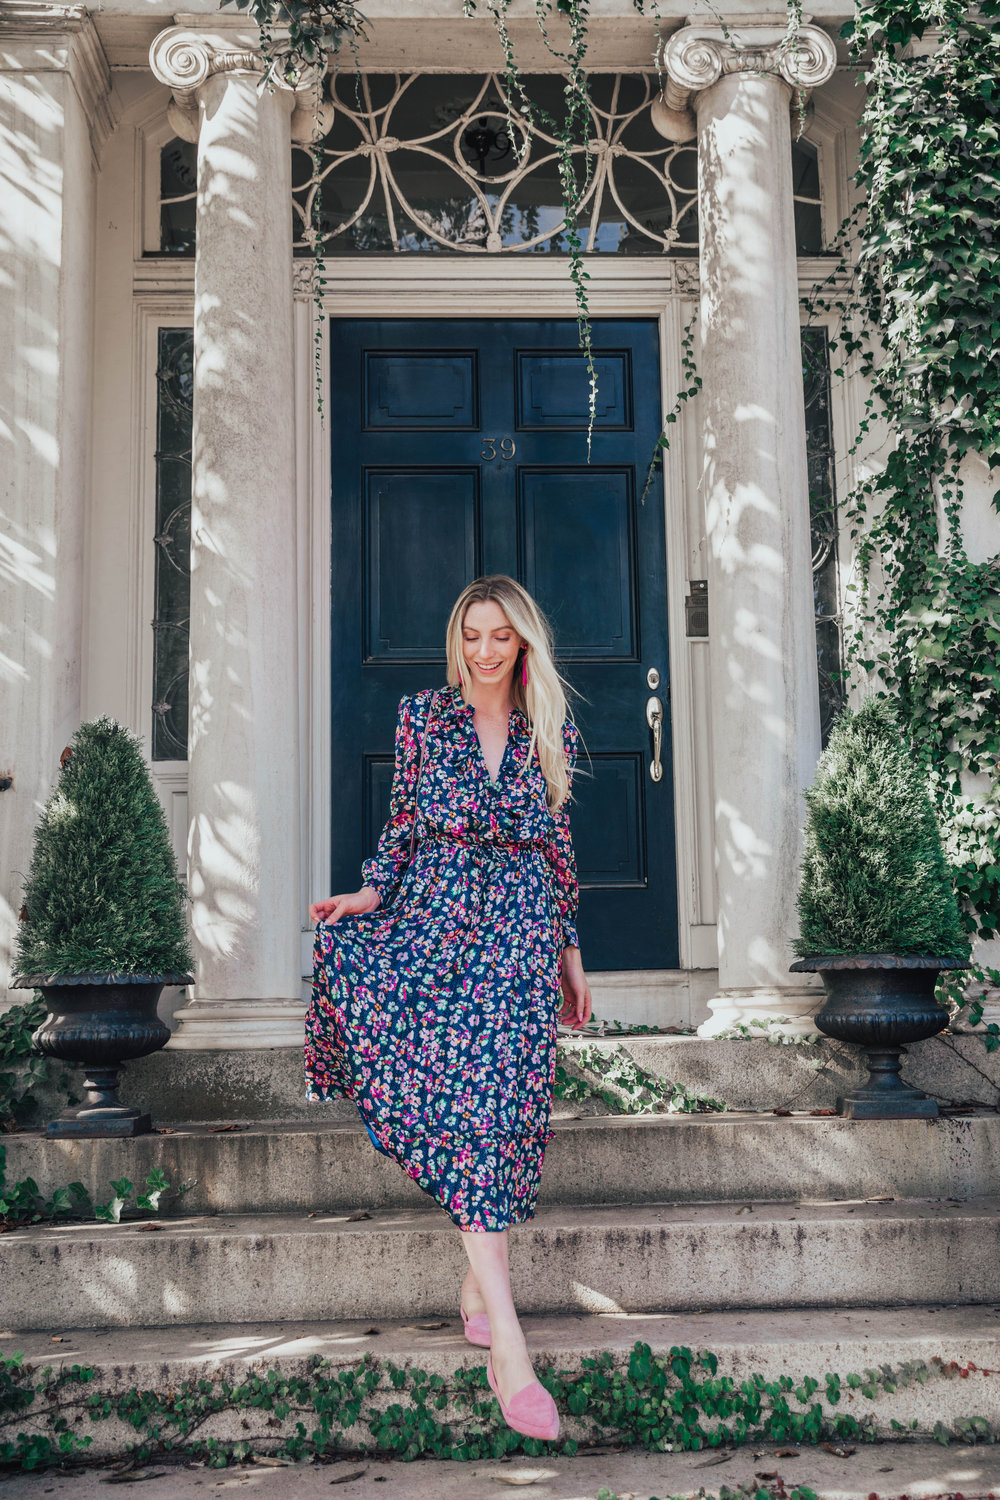 Long sleeve floral dress | @maevestier